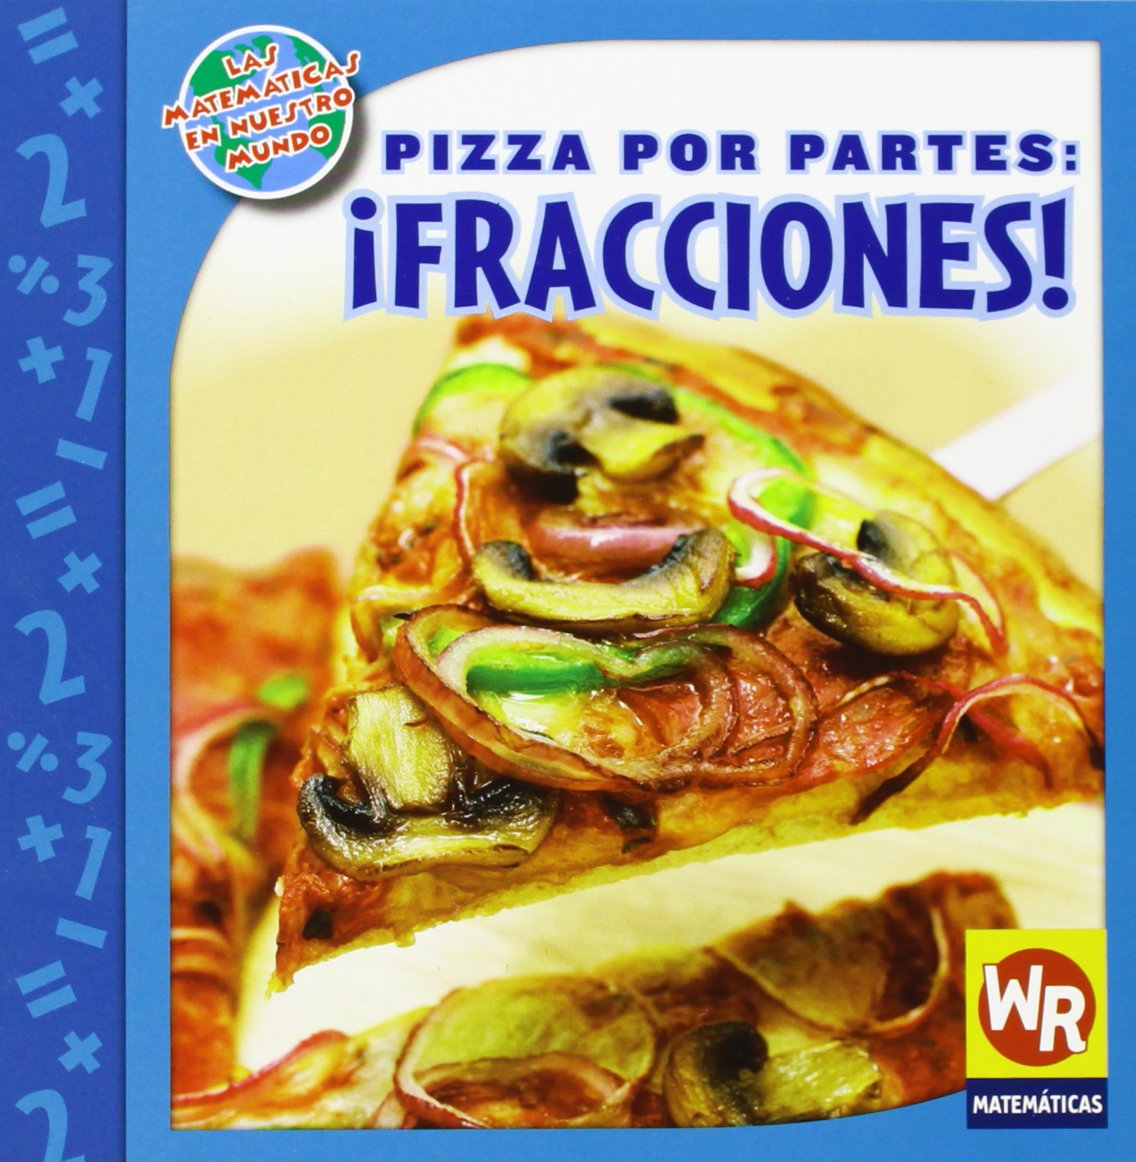 Download Pizza por partes: fracciones! / Pizza Parts: Fractions (Las matematicas en nuestro mundo, Nivel 3 / Math in Our World, Level 3) (Spanish Edition) PDF